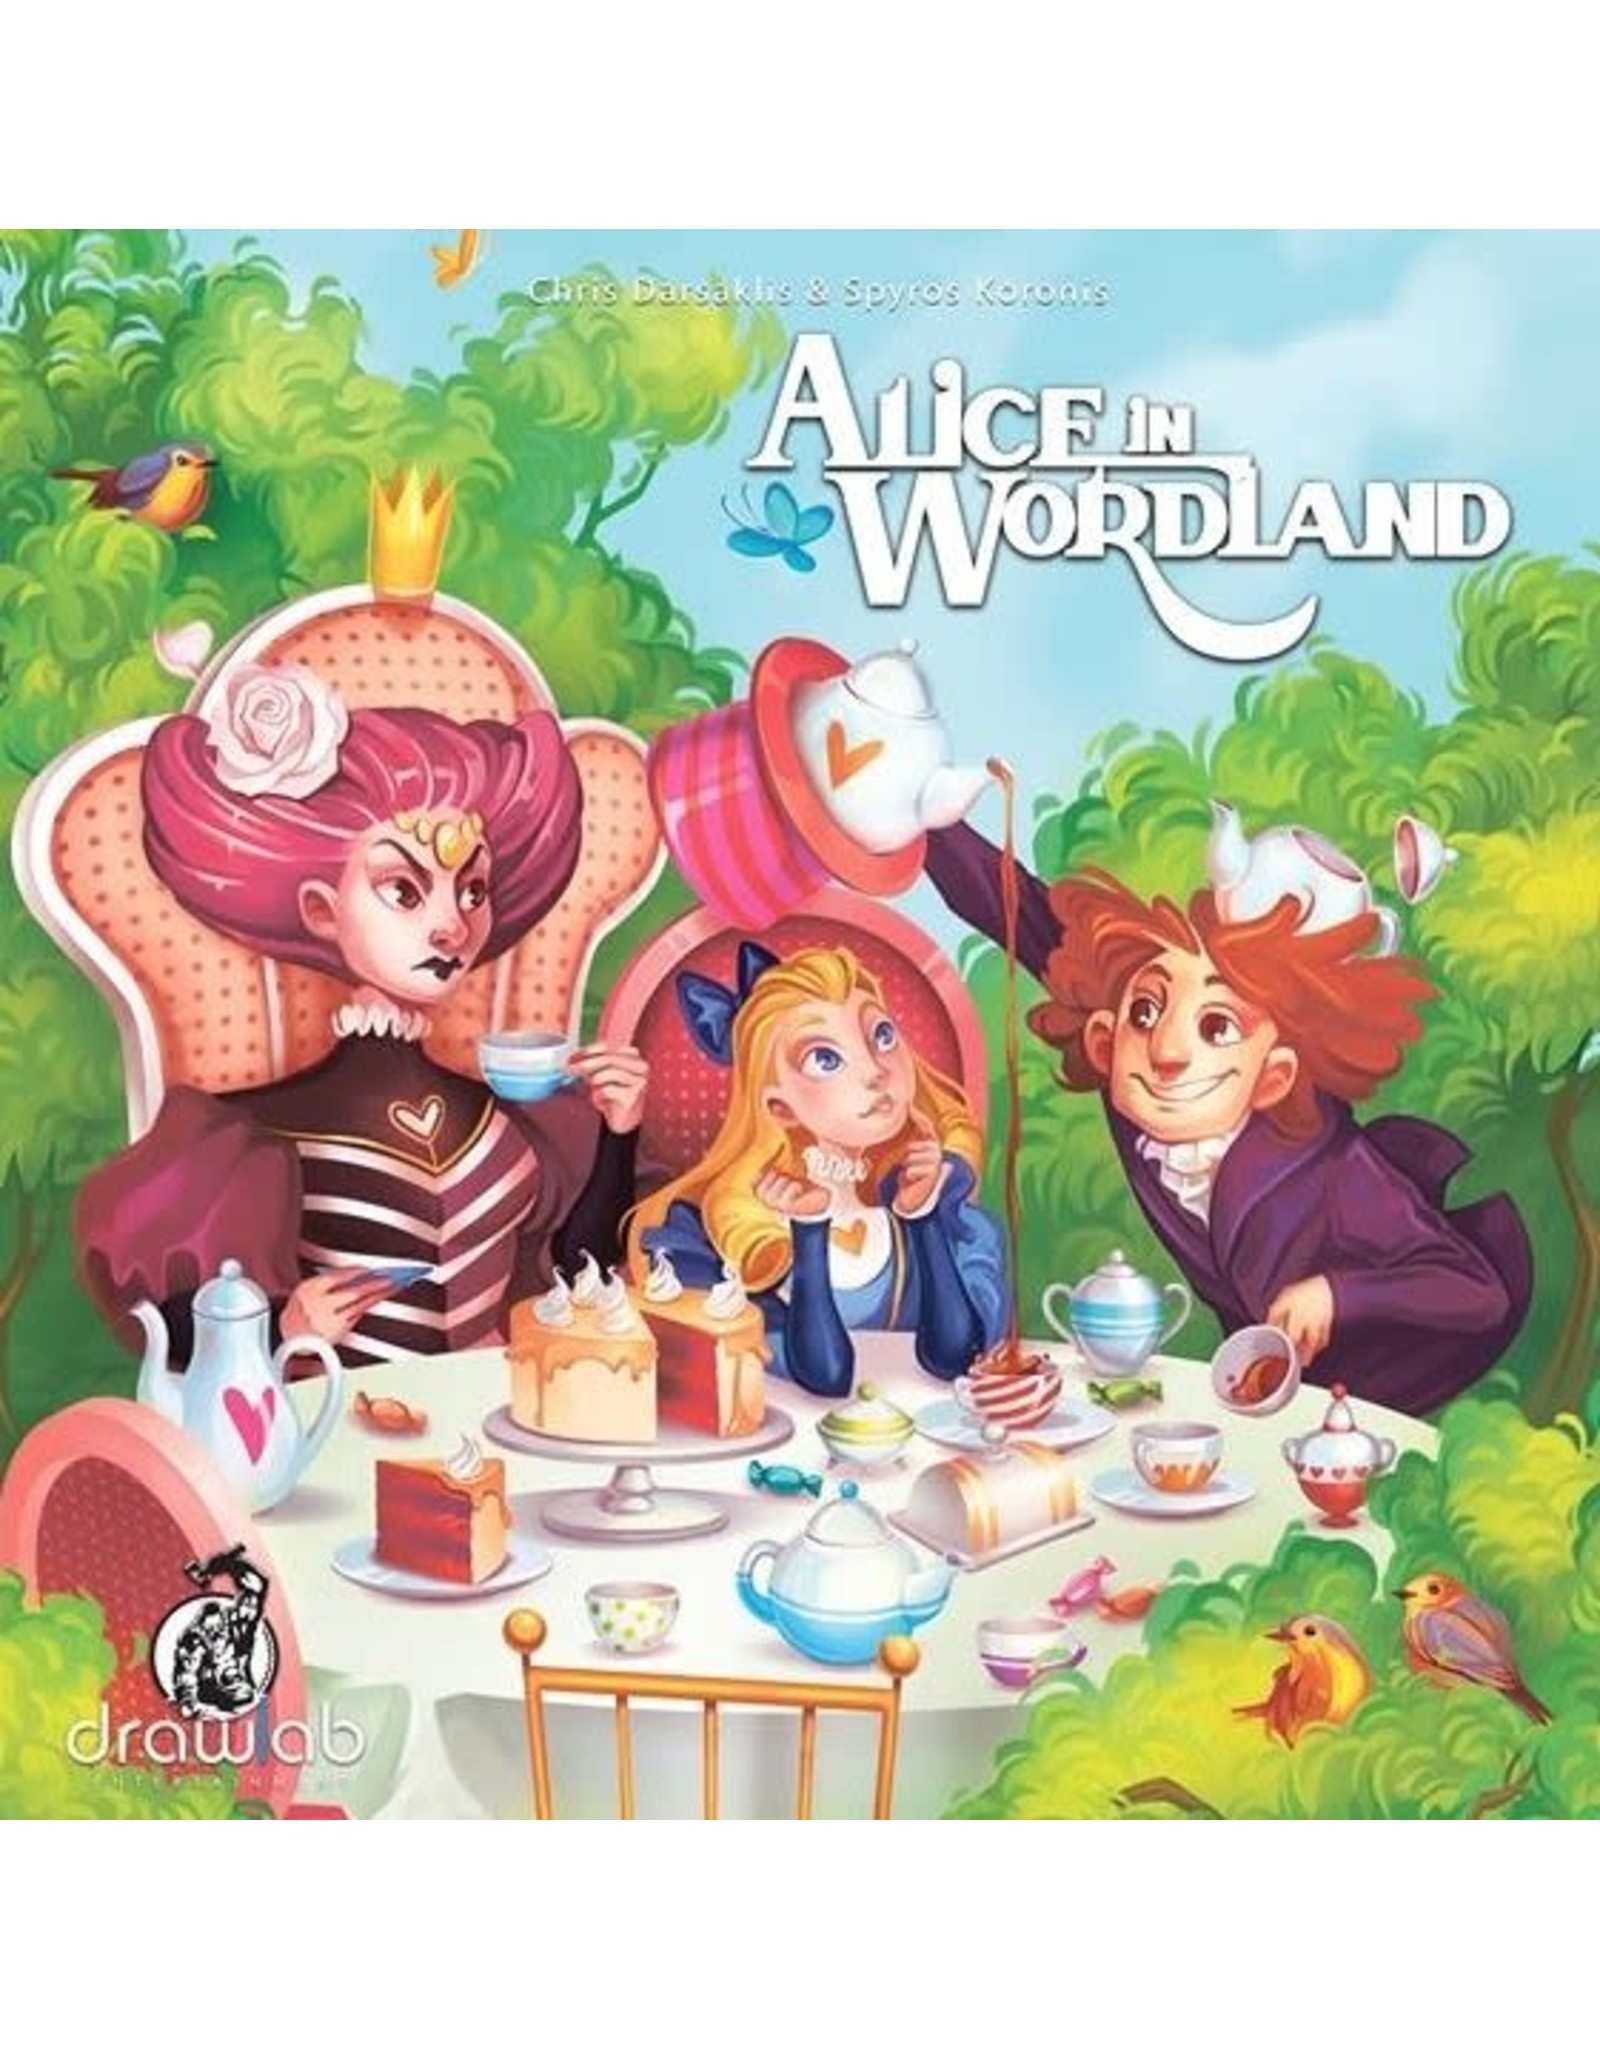 drawlab ALICE IN WORDLAND